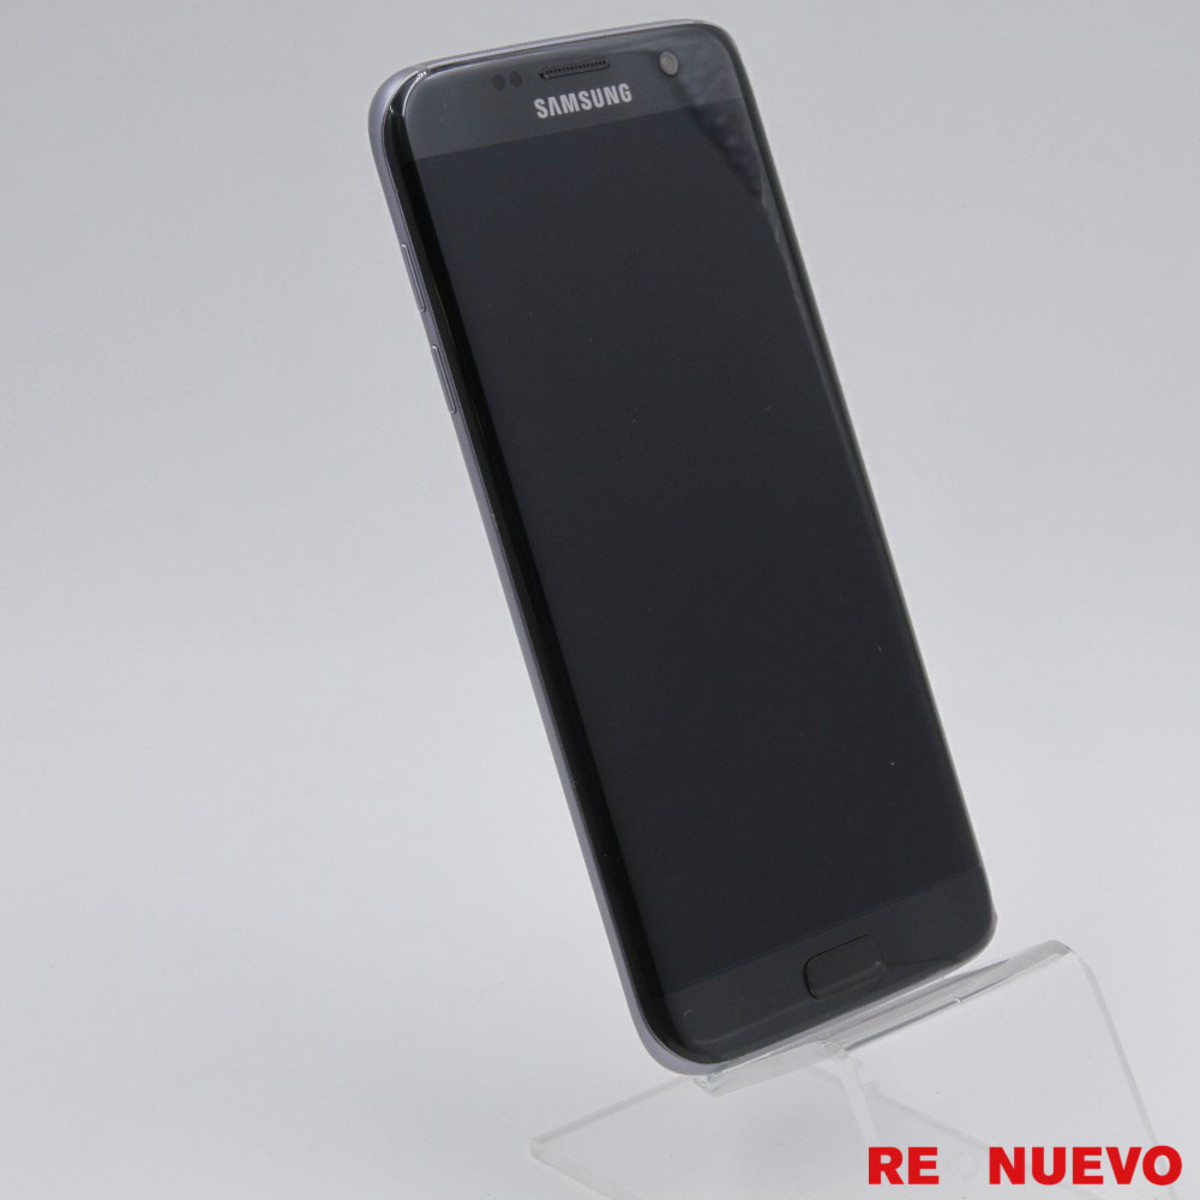 Comprar Galaxy S7 Edge Increíble Prar Samsung Galaxy S7 Edge De 32gb Black Yx De Of Comprar Galaxy S7 Edge Perfecto Samsung Galaxy S7 Edge Celulares Costa Rica